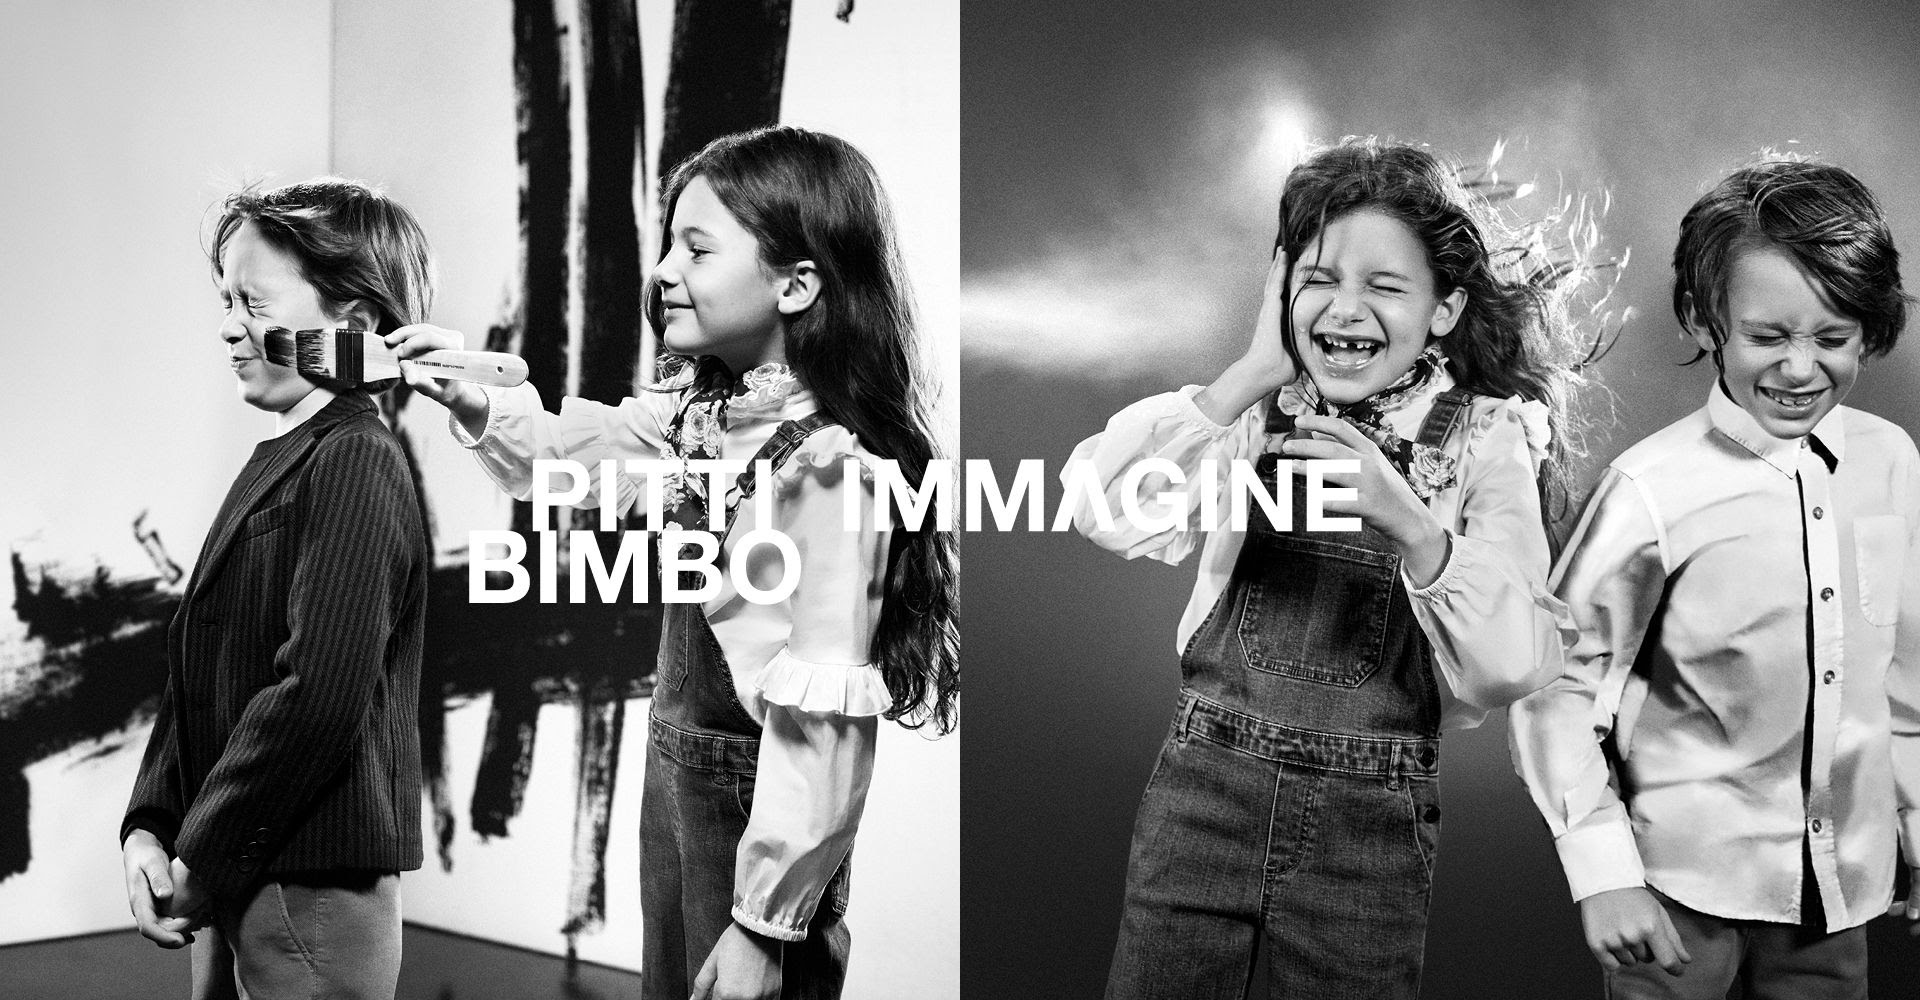 Pitti Immagine Bimbo 88 and all the news